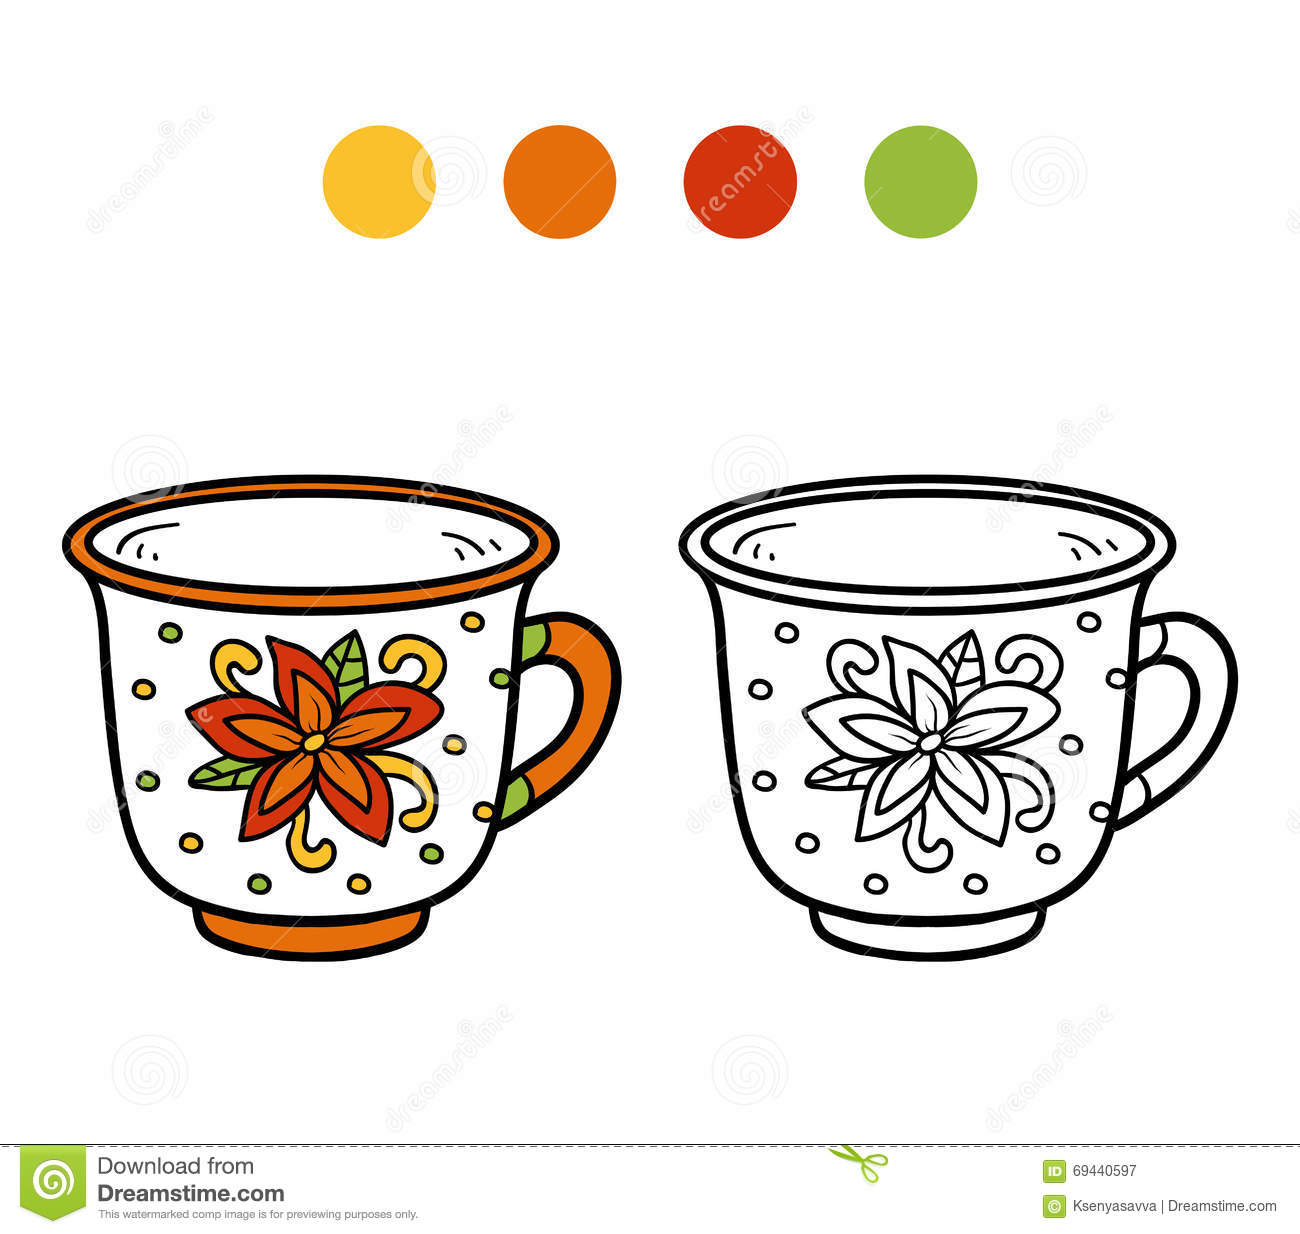 livre de coloriage pour des enfants une tasse avec la fleur illustration de vecteur image. Black Bedroom Furniture Sets. Home Design Ideas